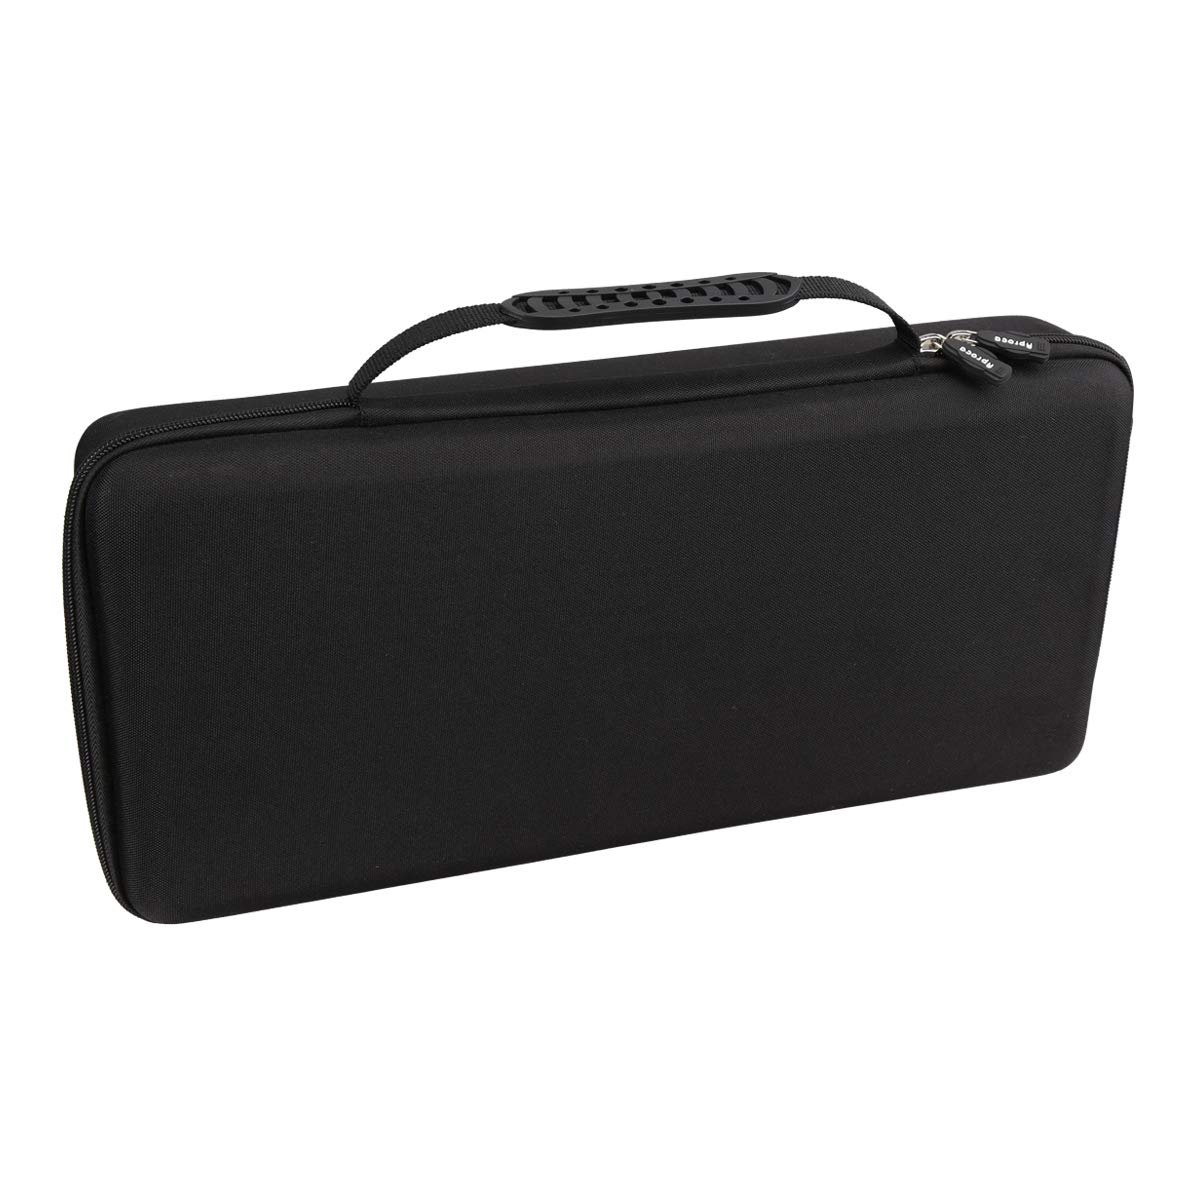 Aproca Hard Carrying Travel Case Fit Canon PIXMA iP110 Wireless Mobile Printer (Black) by Aproca (Image #5)